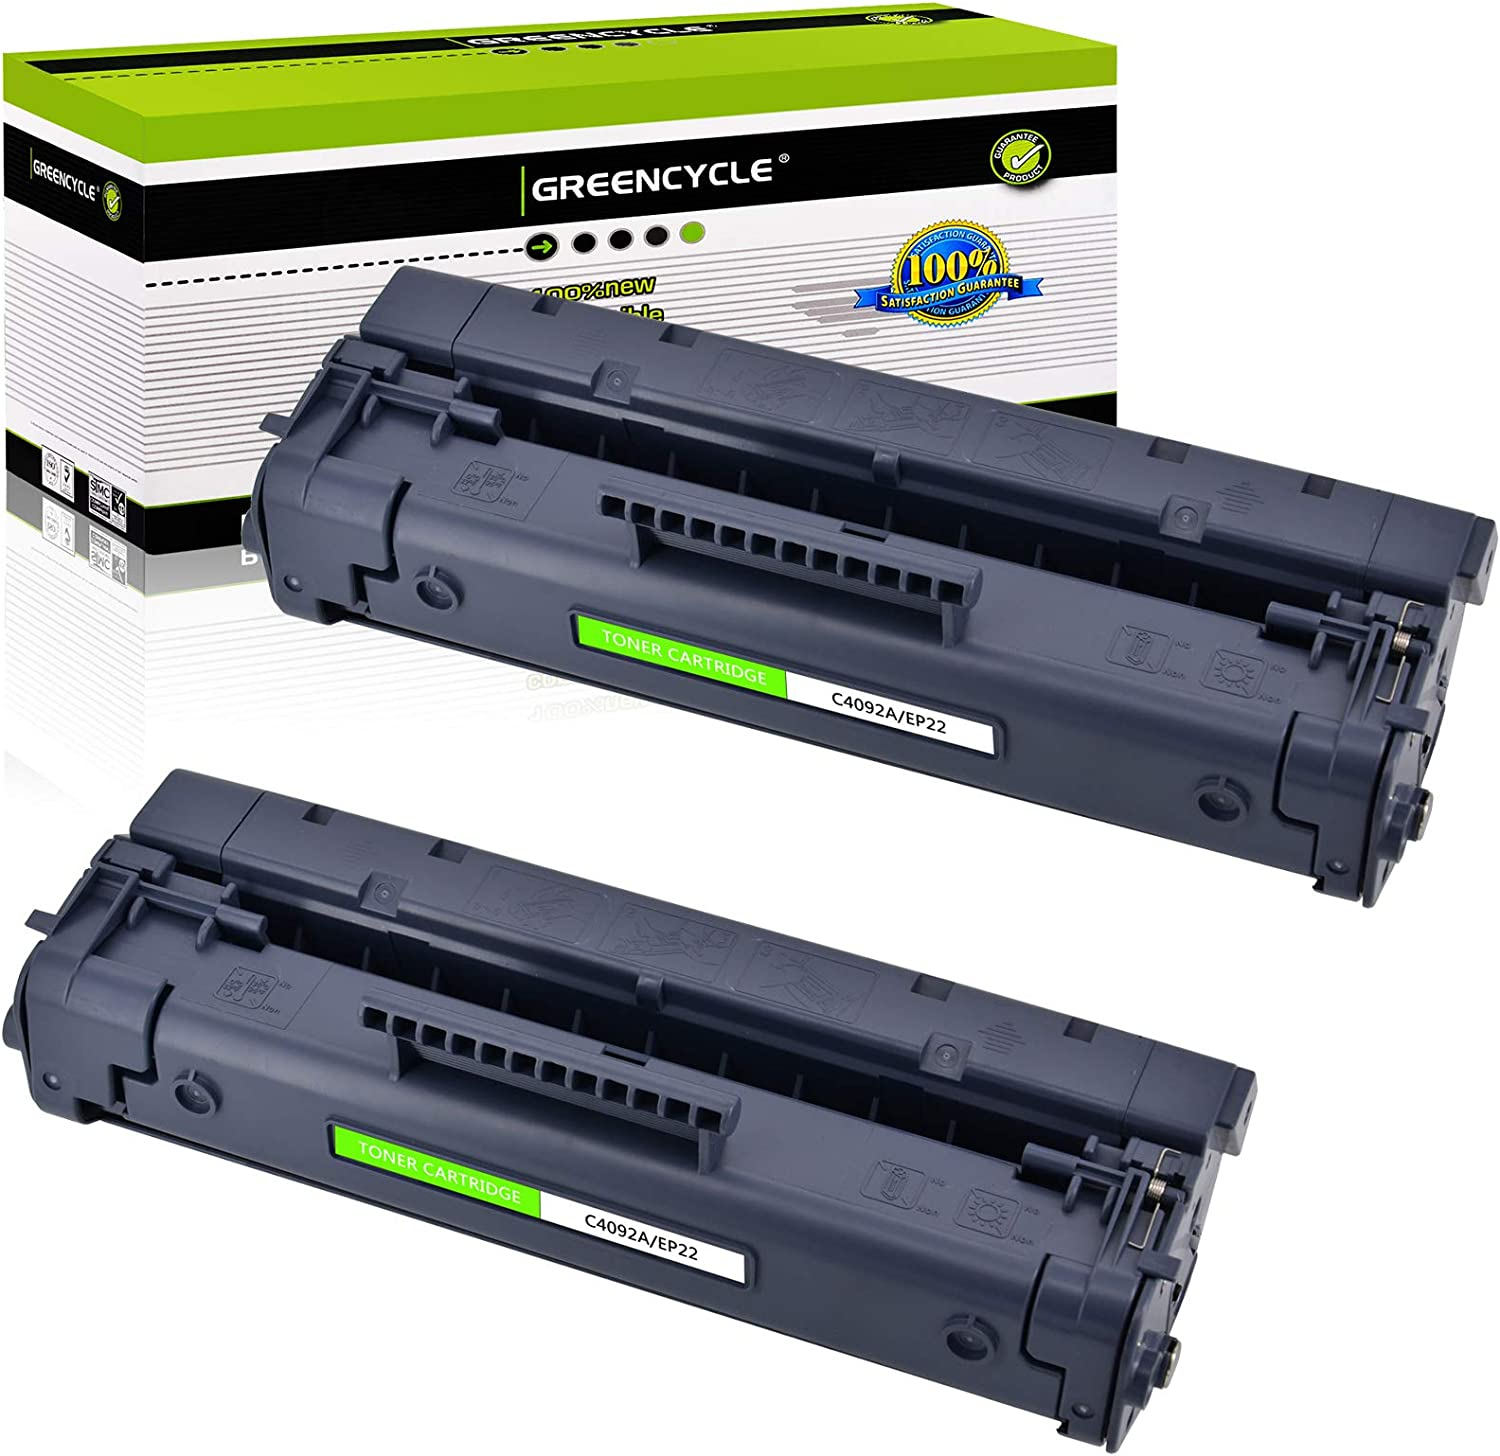 greencycle 2 PK Compatible C4092A 92A Black Toner Cartridges for HP Laserjet 1100 3200 1100a 3200se